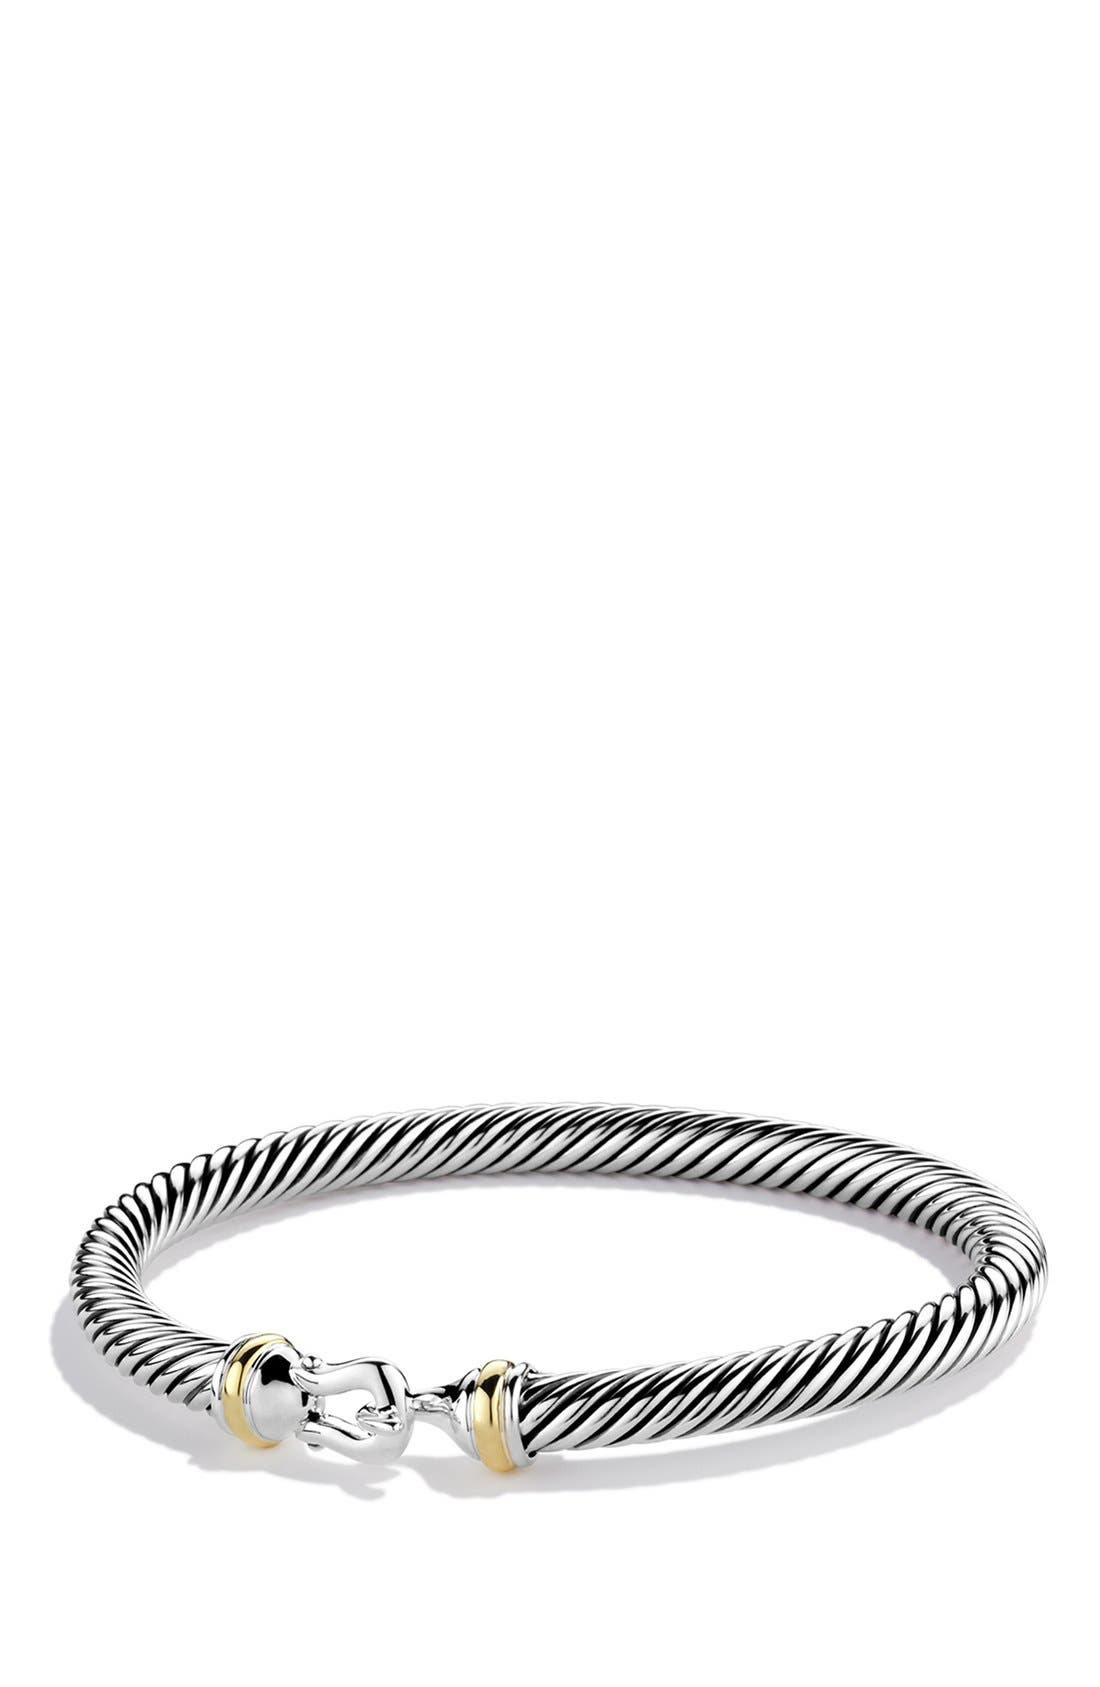 David Yurman 'Cable Buckle' Bracelet